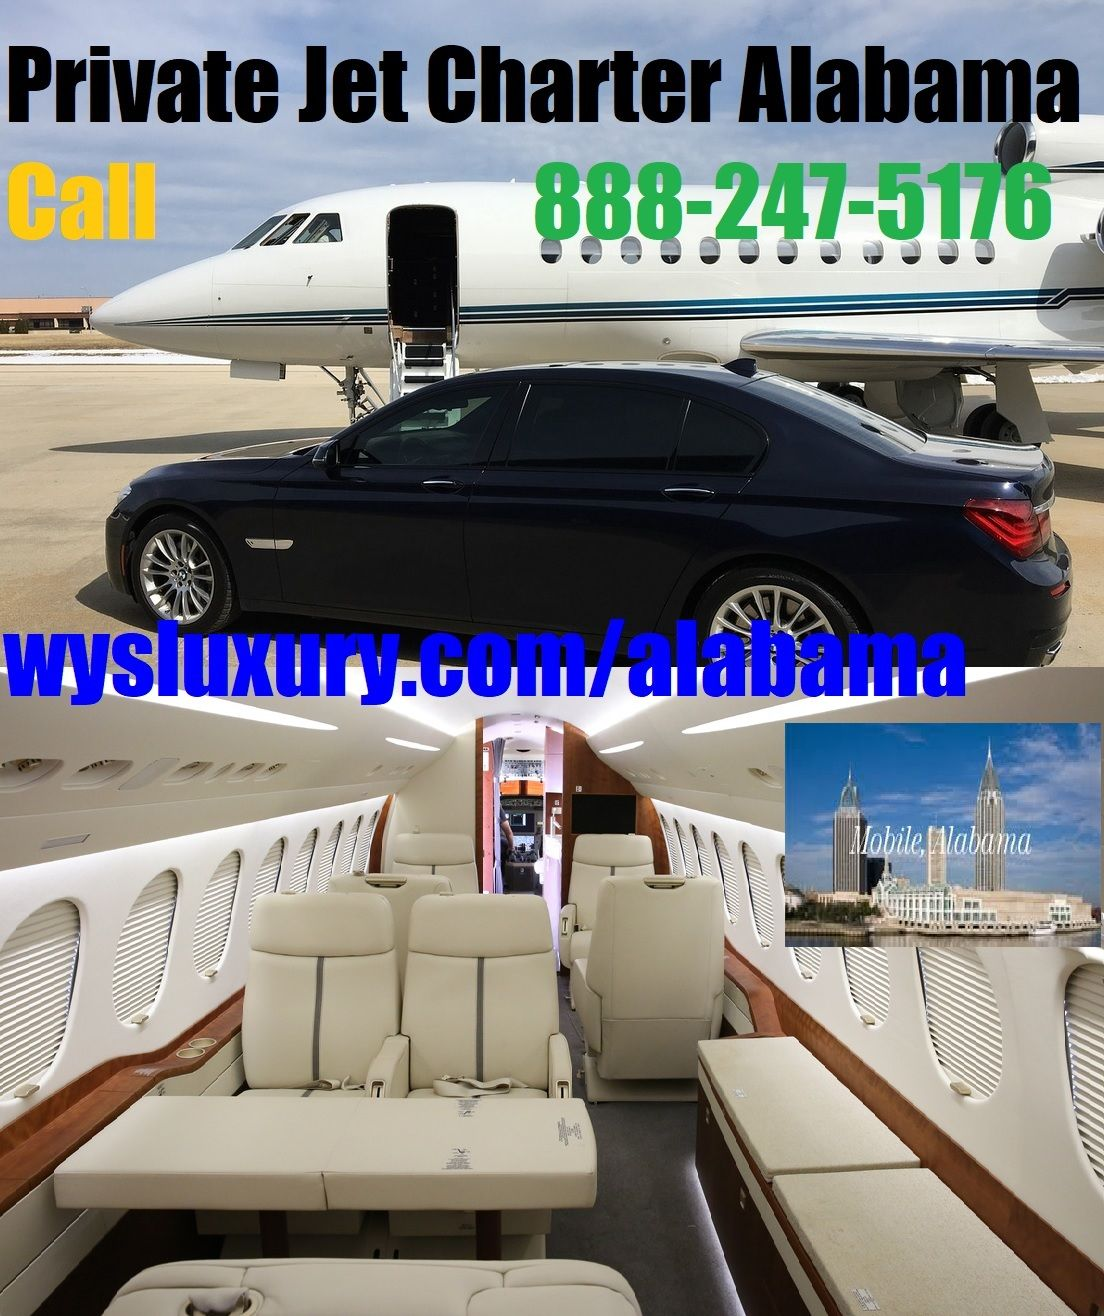 Private Jet Quote Executive Travel Private Jet Charter Mobile Dothan Enterprise